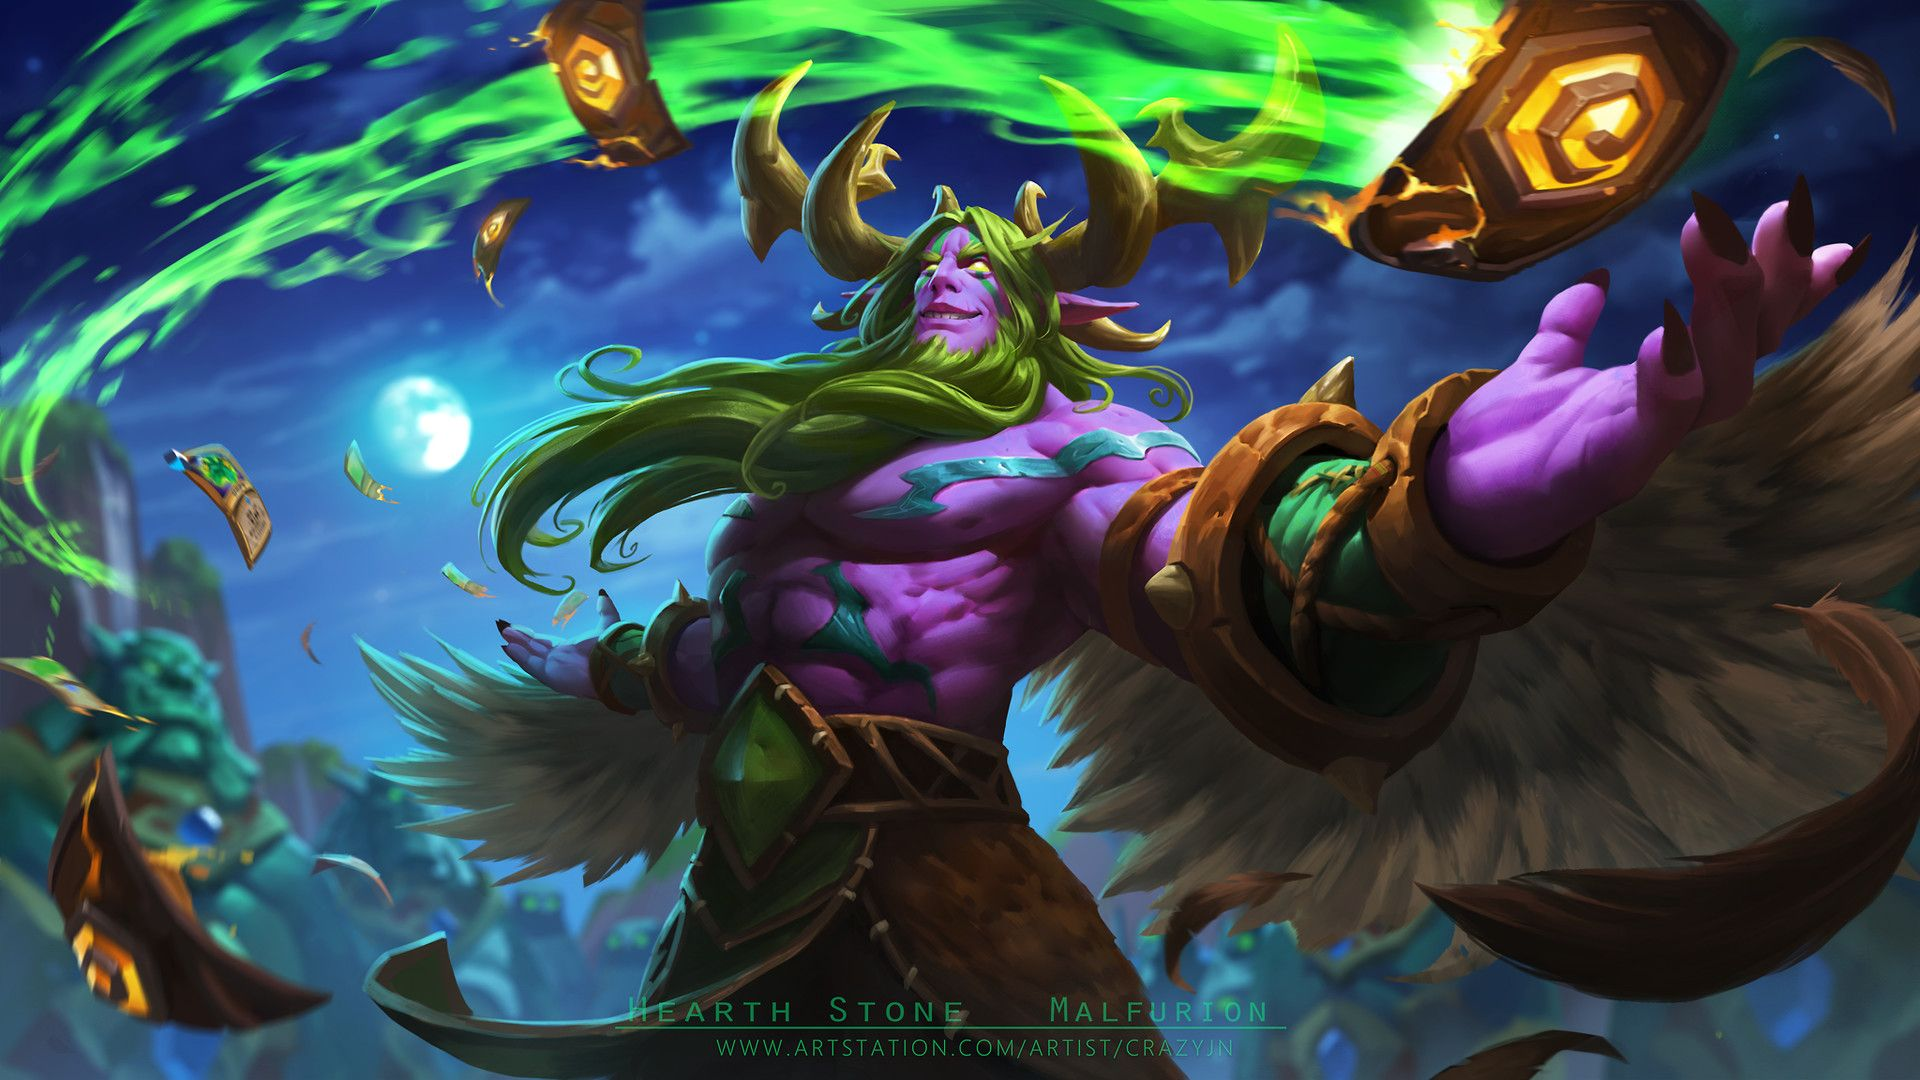 Artstation Malfurion Stormrage Crazy Jn World Of Warcraft Warcraft Art Fan Art The game is heroes of the storm, this was made for the subreddit /r/nexusnewbies which is where questions will be answered for people trying to be improved. artstation malfurion stormrage crazy